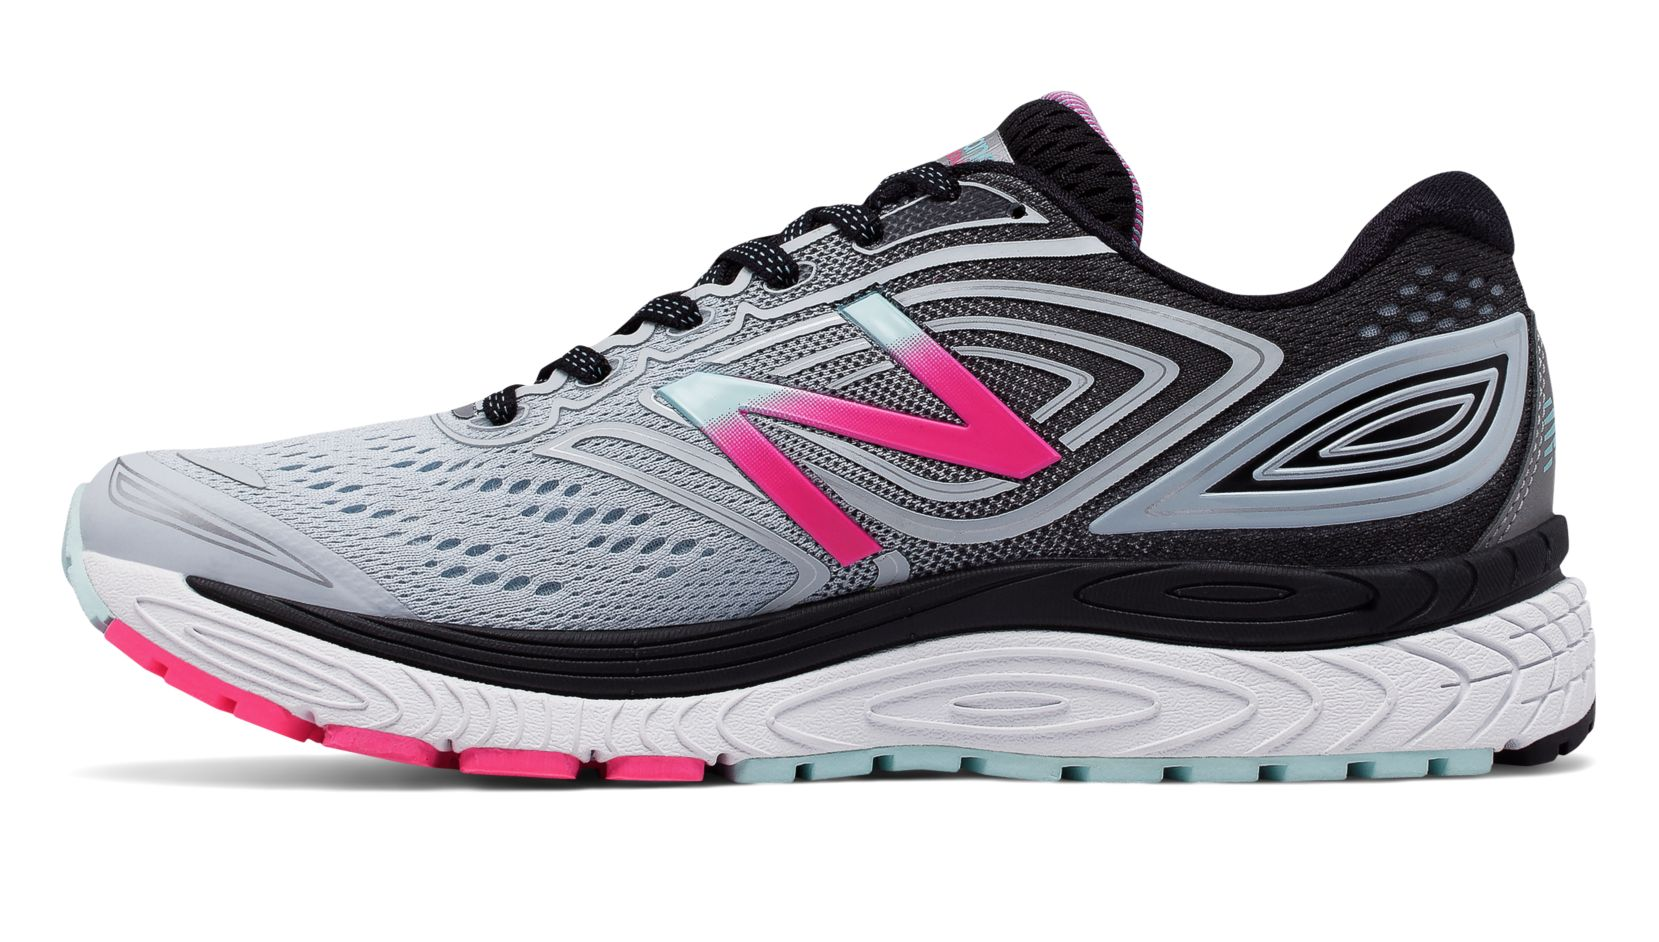 New Balance 880v7, Light Porcelain Blue with Black & Alpha Pink